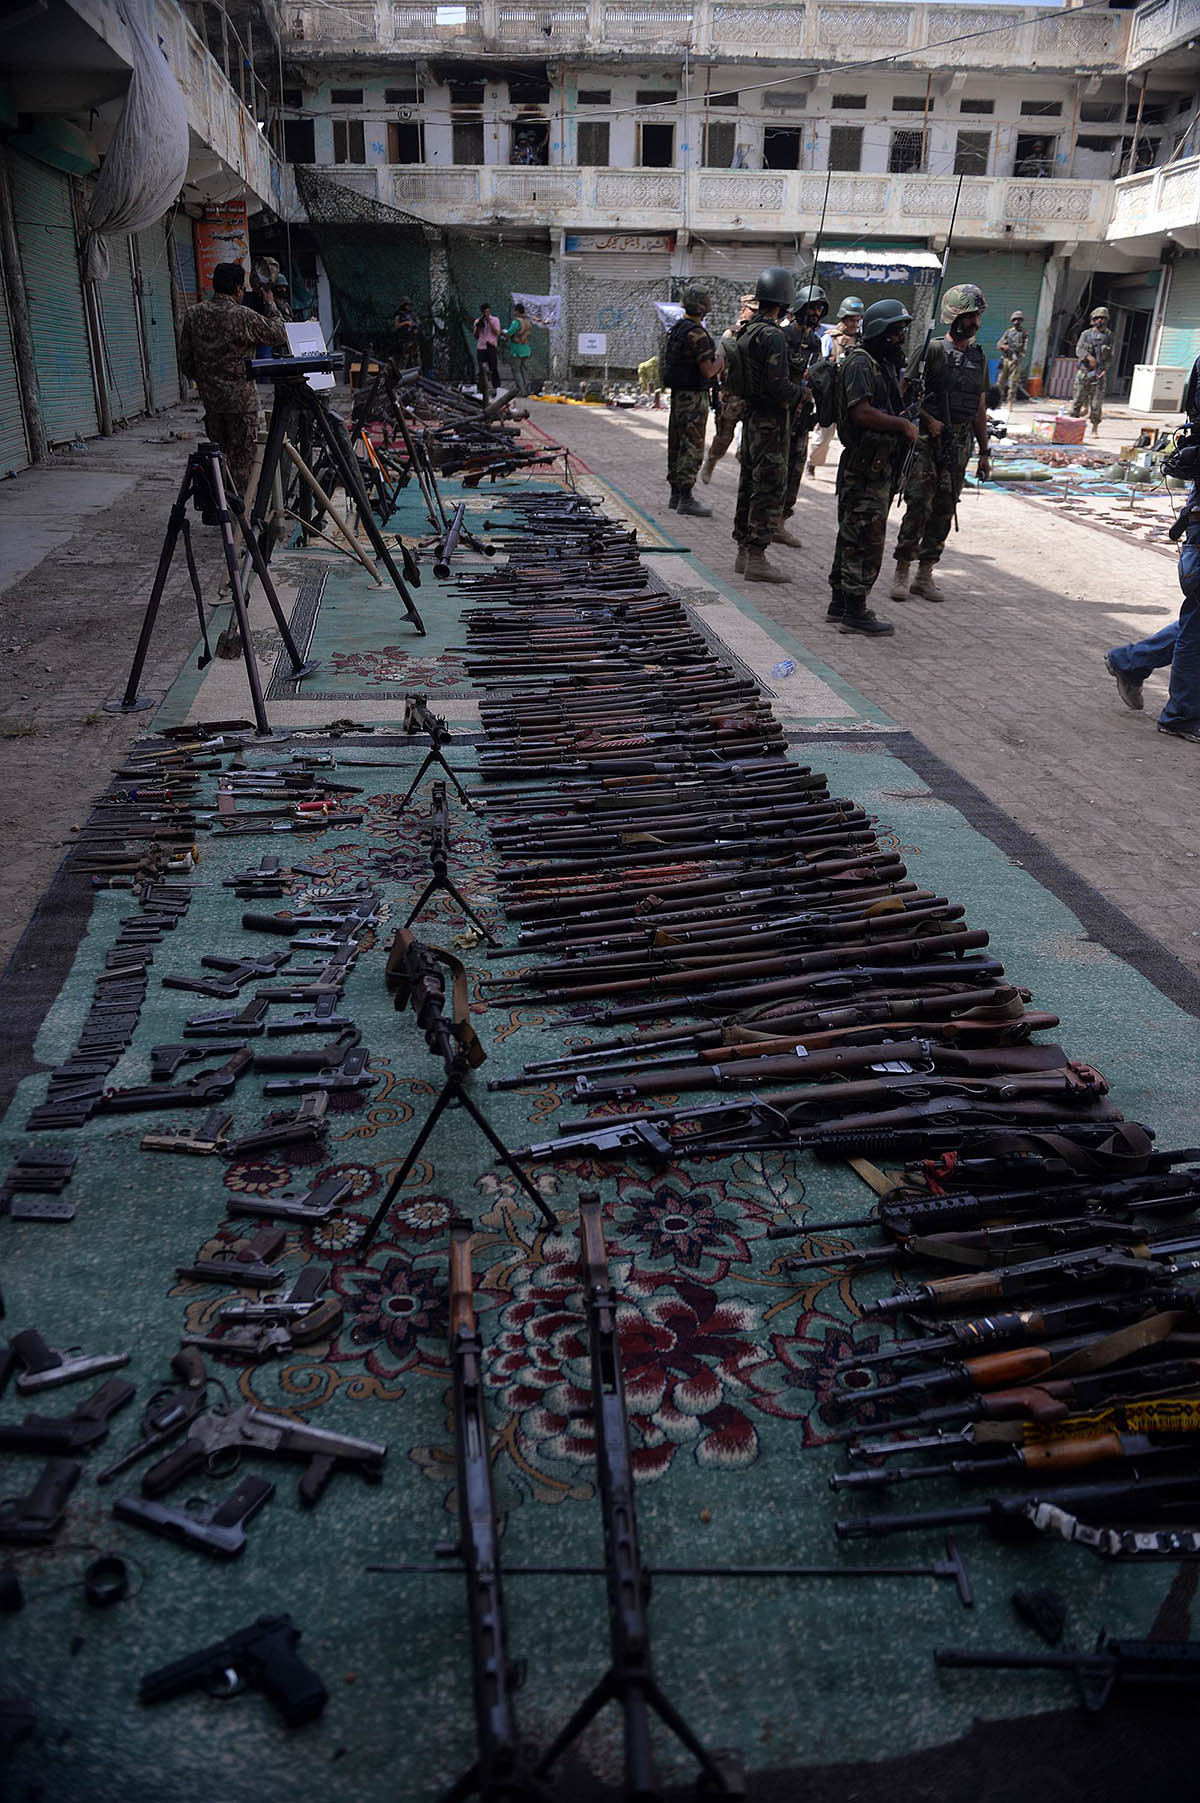 Pakistani soldiers stand by seized weapons at an empty bazaar during a military operation against Taliban militants in the main town of Miranshah in North Waziristan on July 9, 2014. Last month Pakistan's military launched a long-awaited offensive in North Waziristan, aimed at wiping out longstanding militant strongholds in the area, which borders Afghanistan. More than 800,000 people have fled a major military offensive against the Taliban in a Pakistani tribal area, officials said Wednesday. AFP PHOTO/Aamir QURES